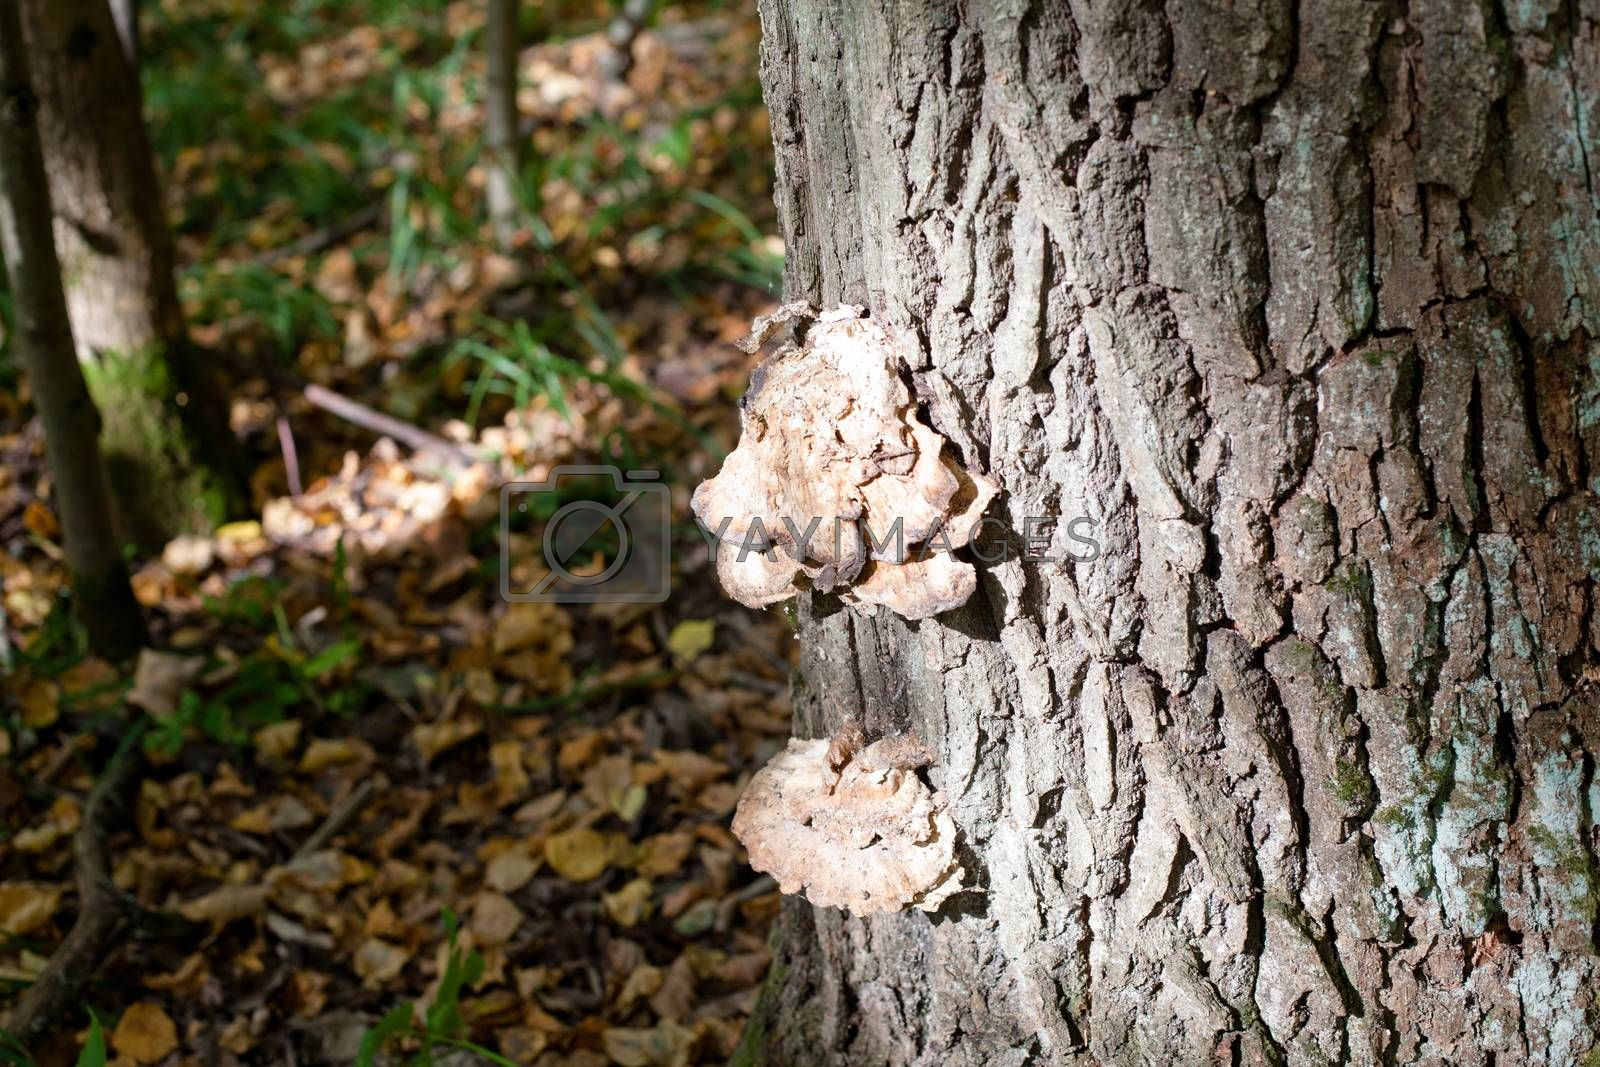 Brown mushroom on a tree trunk in a autumn forest